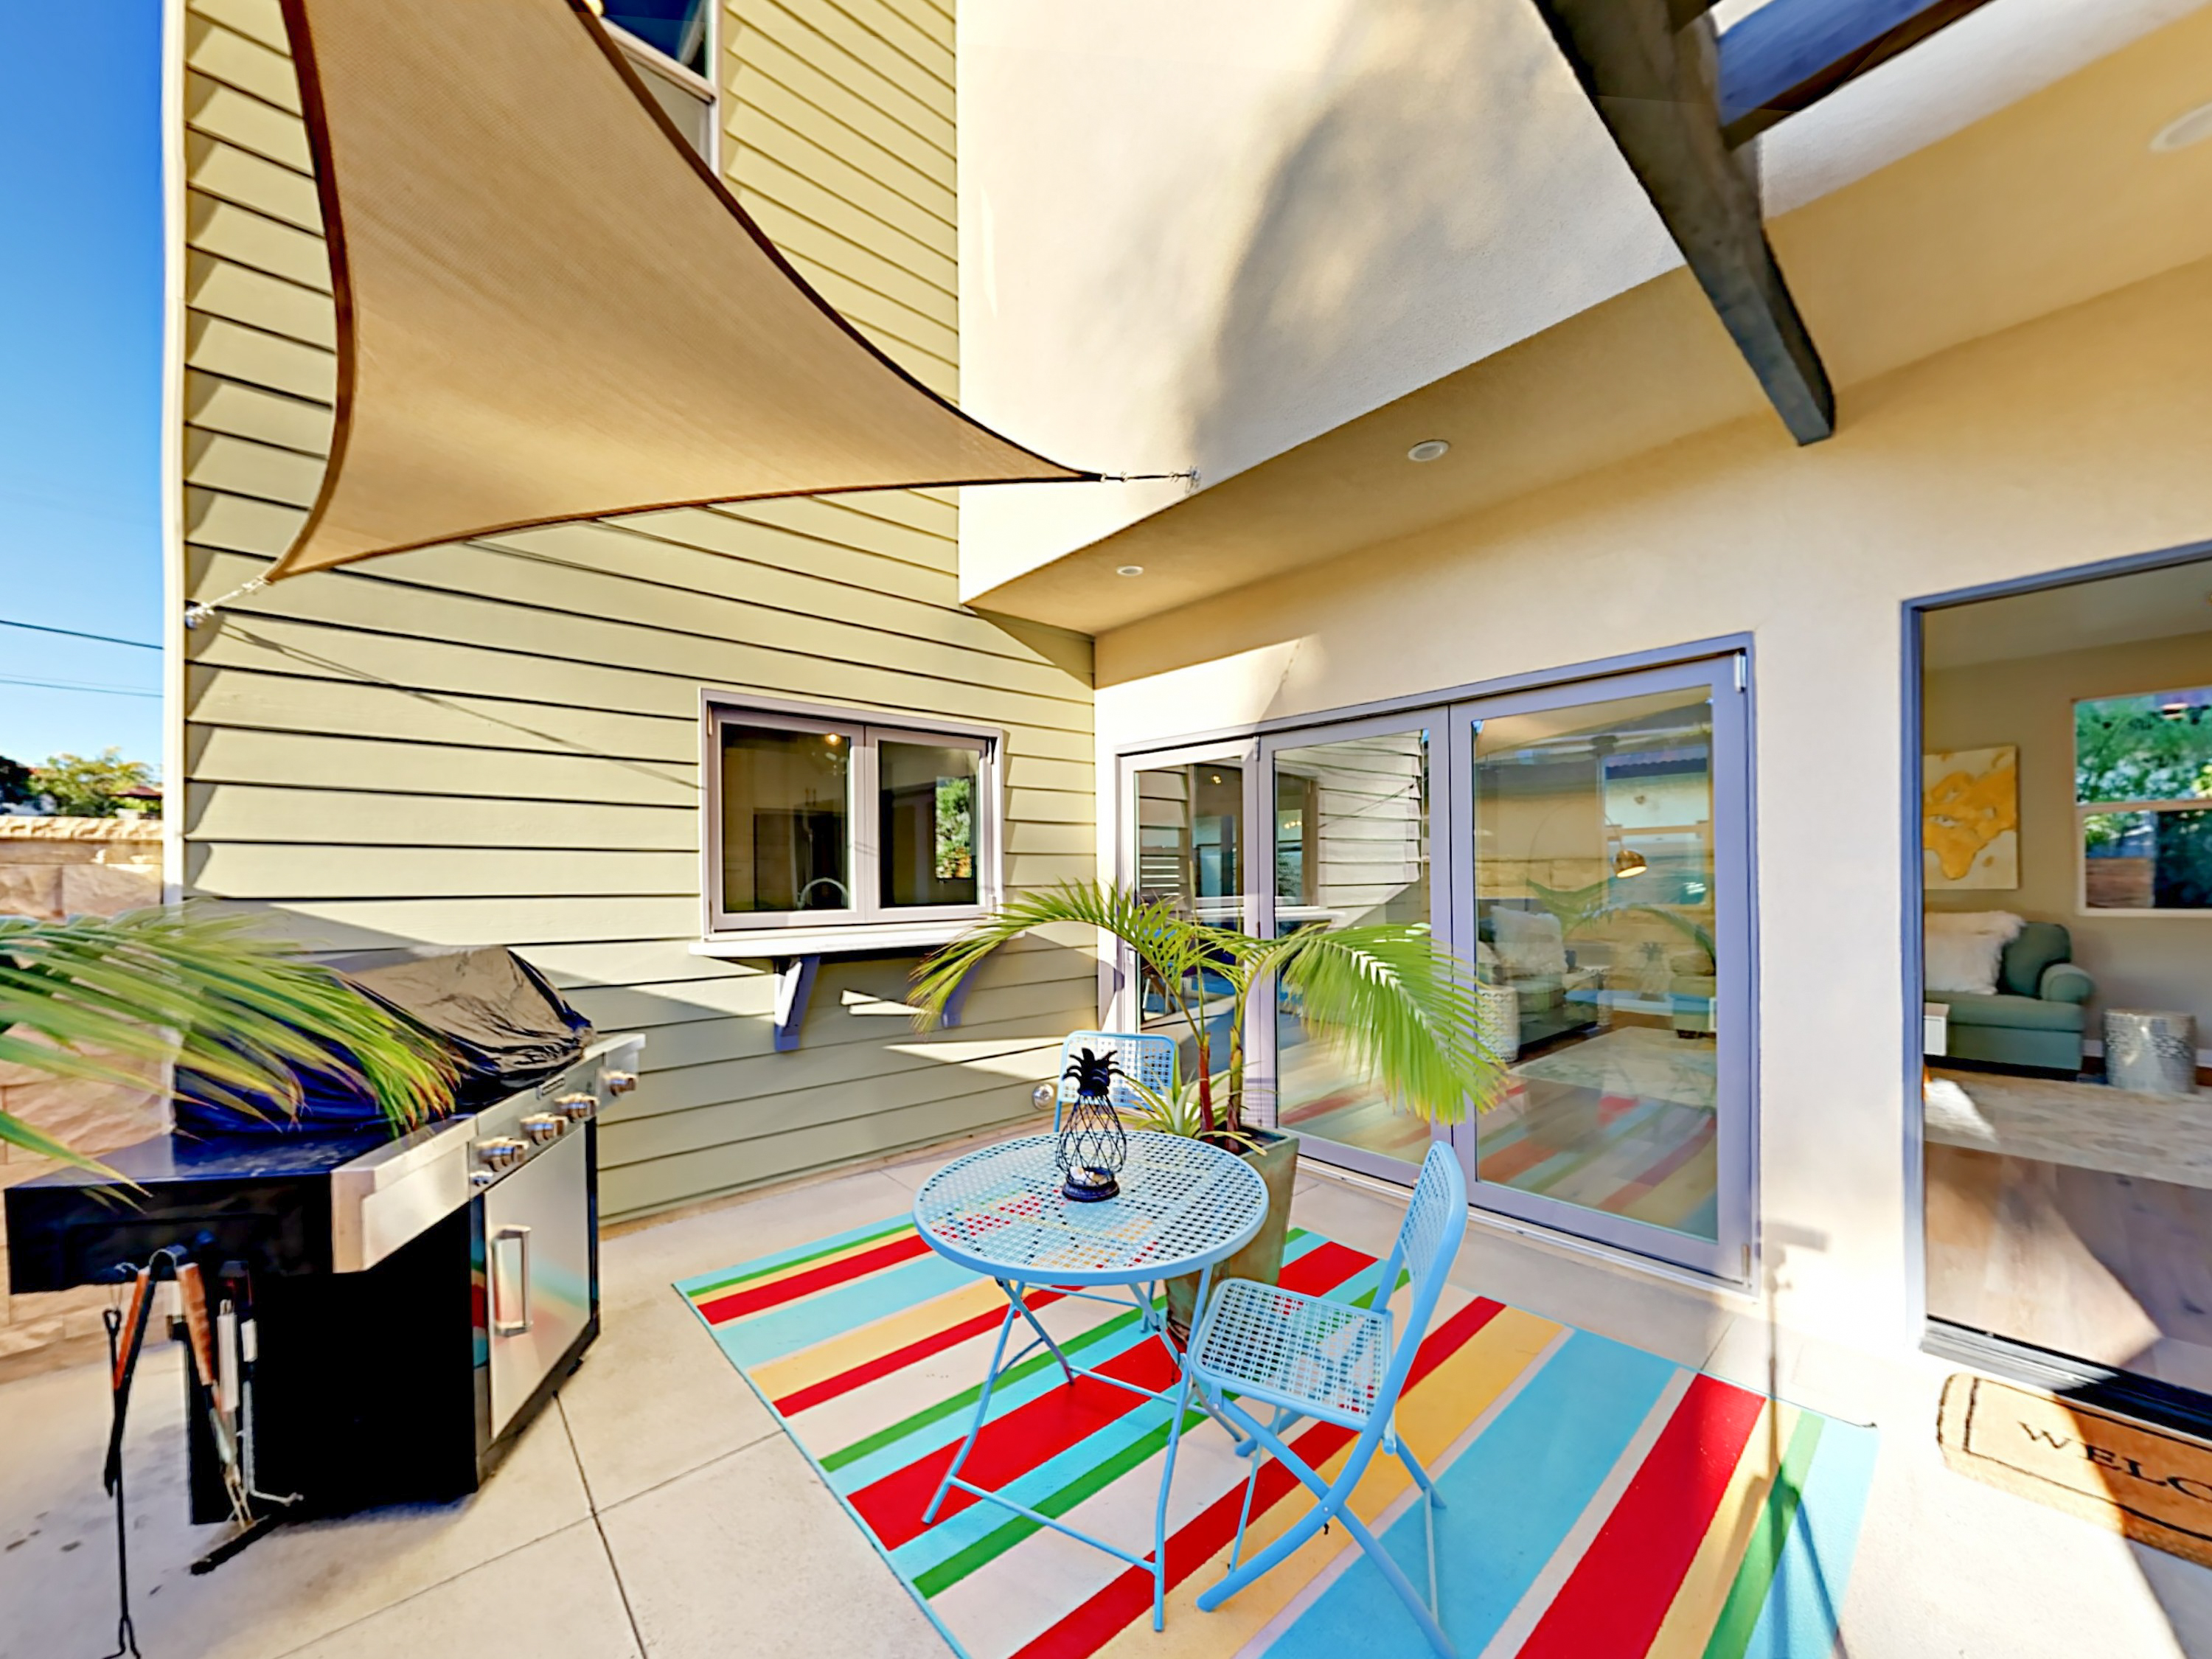 Carlsbad CA Vacation Rental Welcome to Carlsbad!